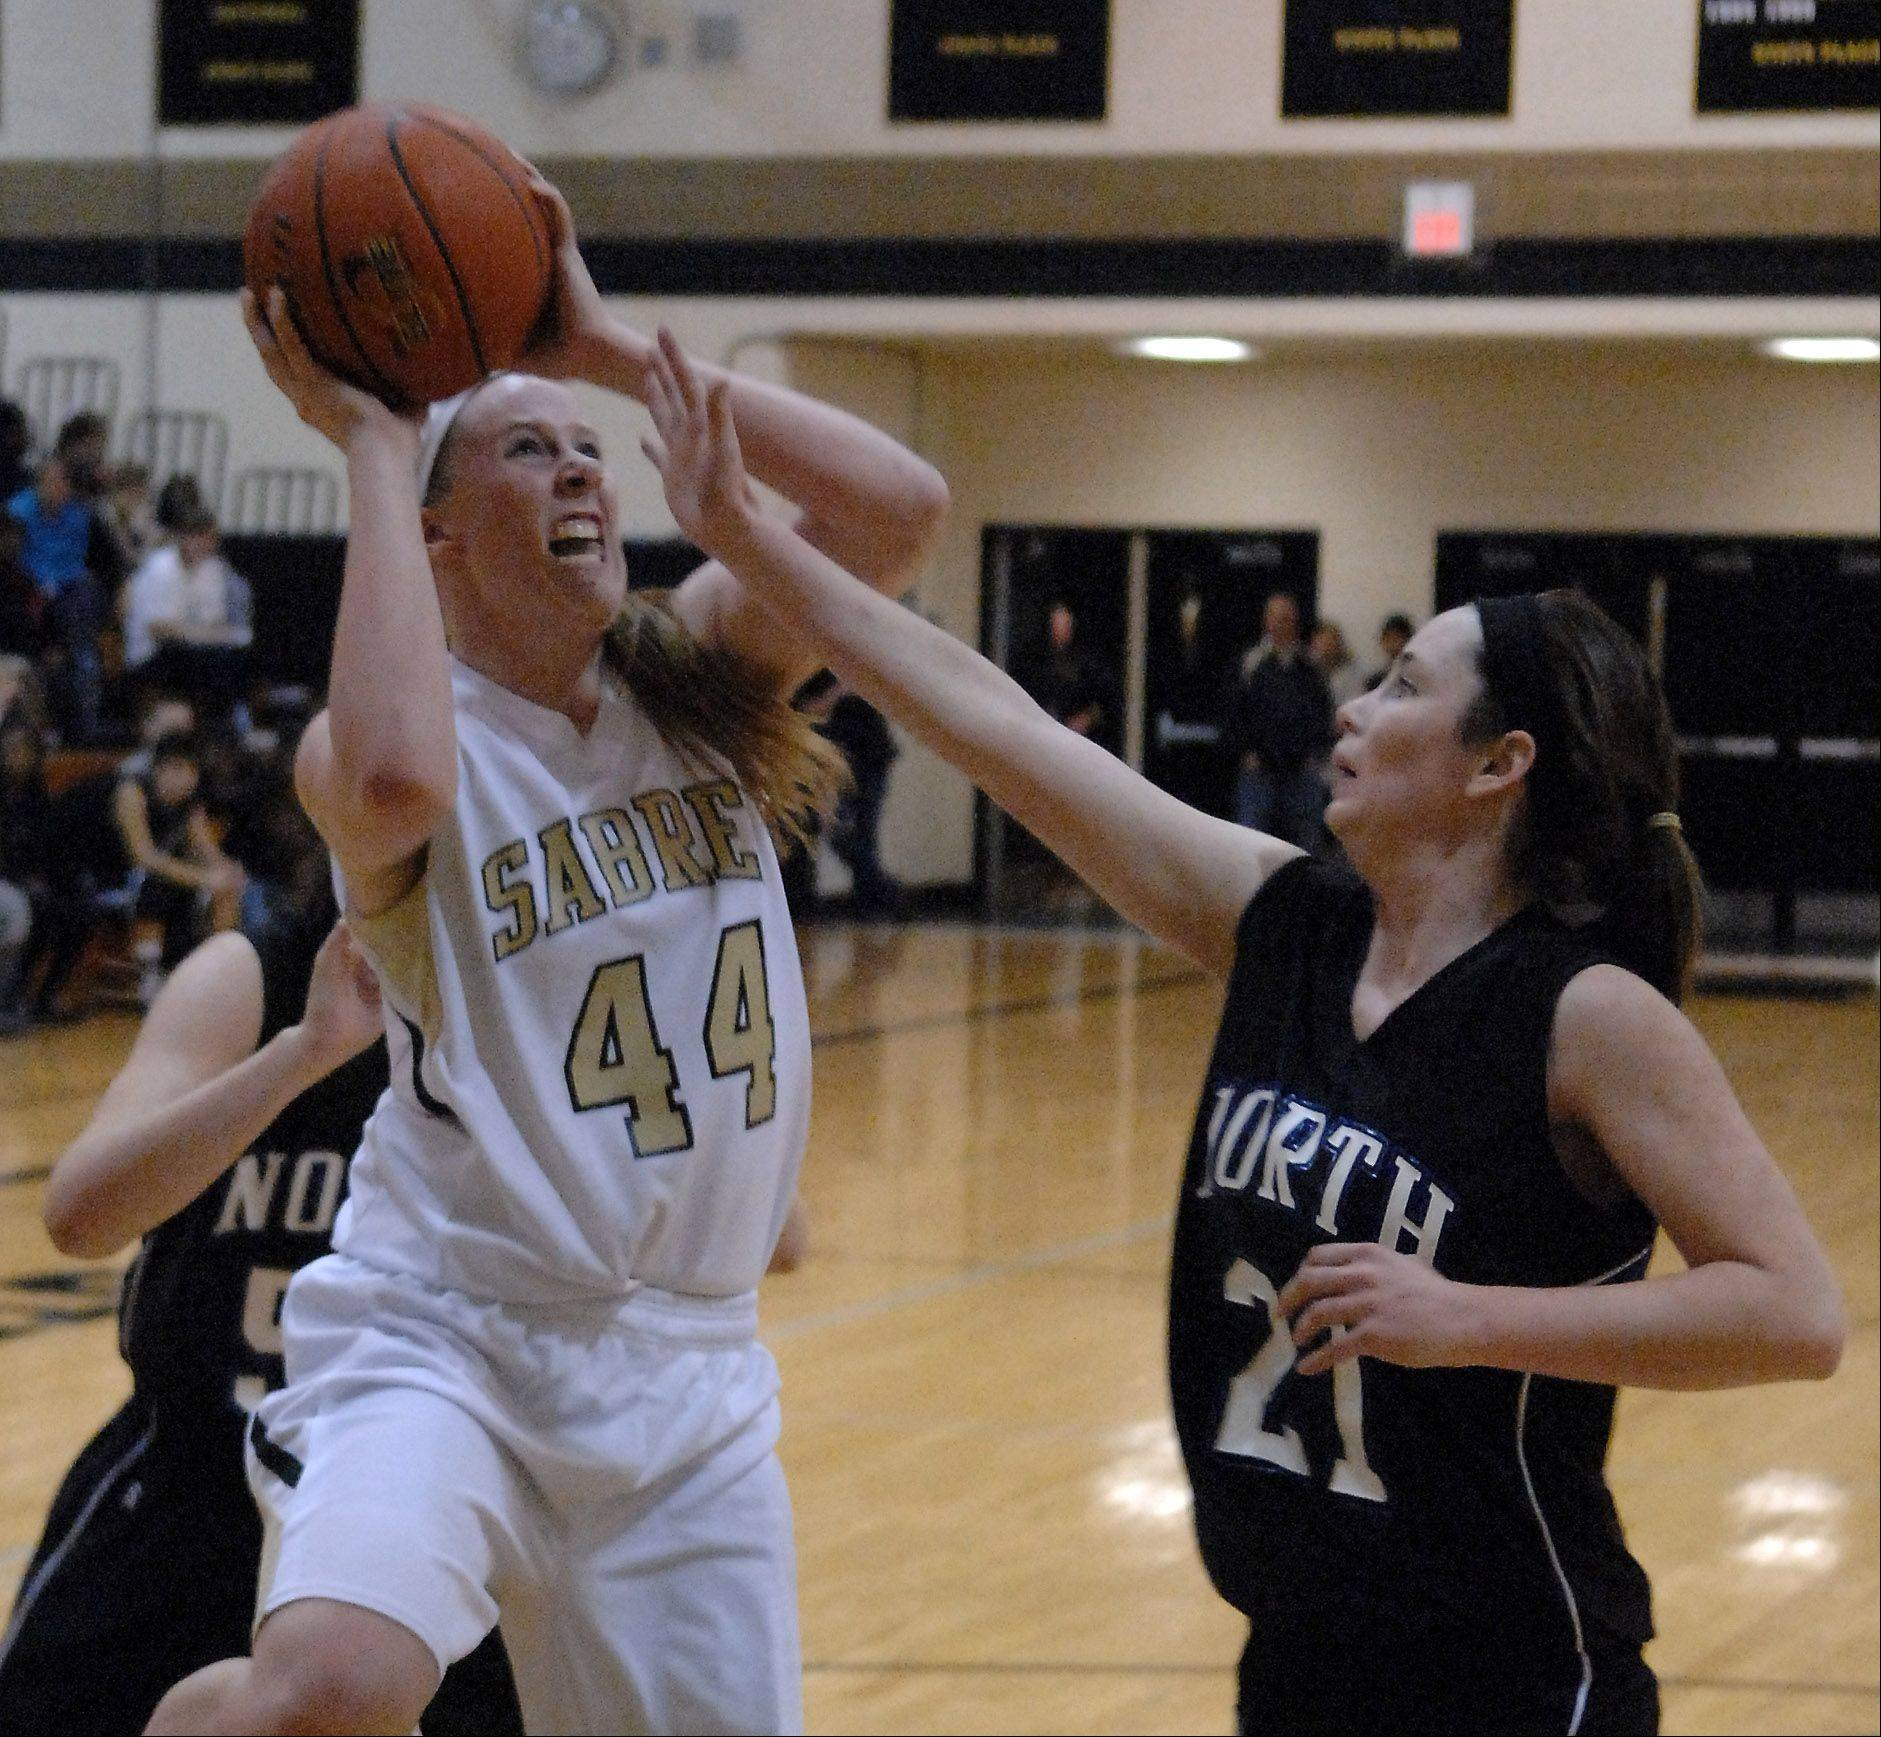 Streamwood�s Hannah McGlone gets a shot off under pressure from St. Charles North�s Alex Silverman in her face.